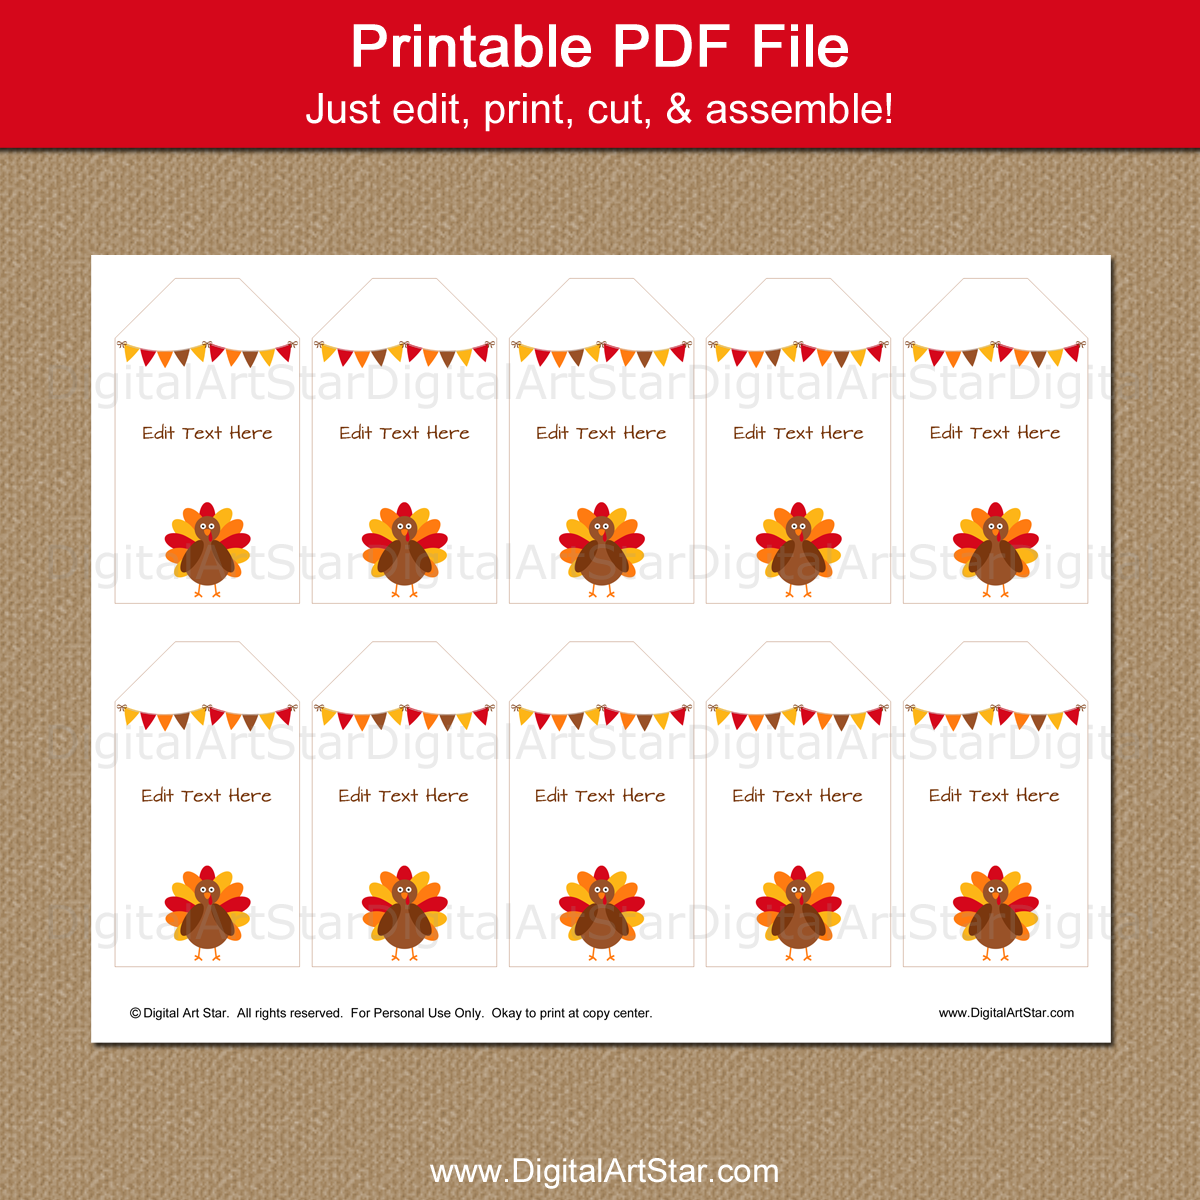 picture about Free Printable Thanksgiving Tags named Thanksgiving Tags - White with Turkeys